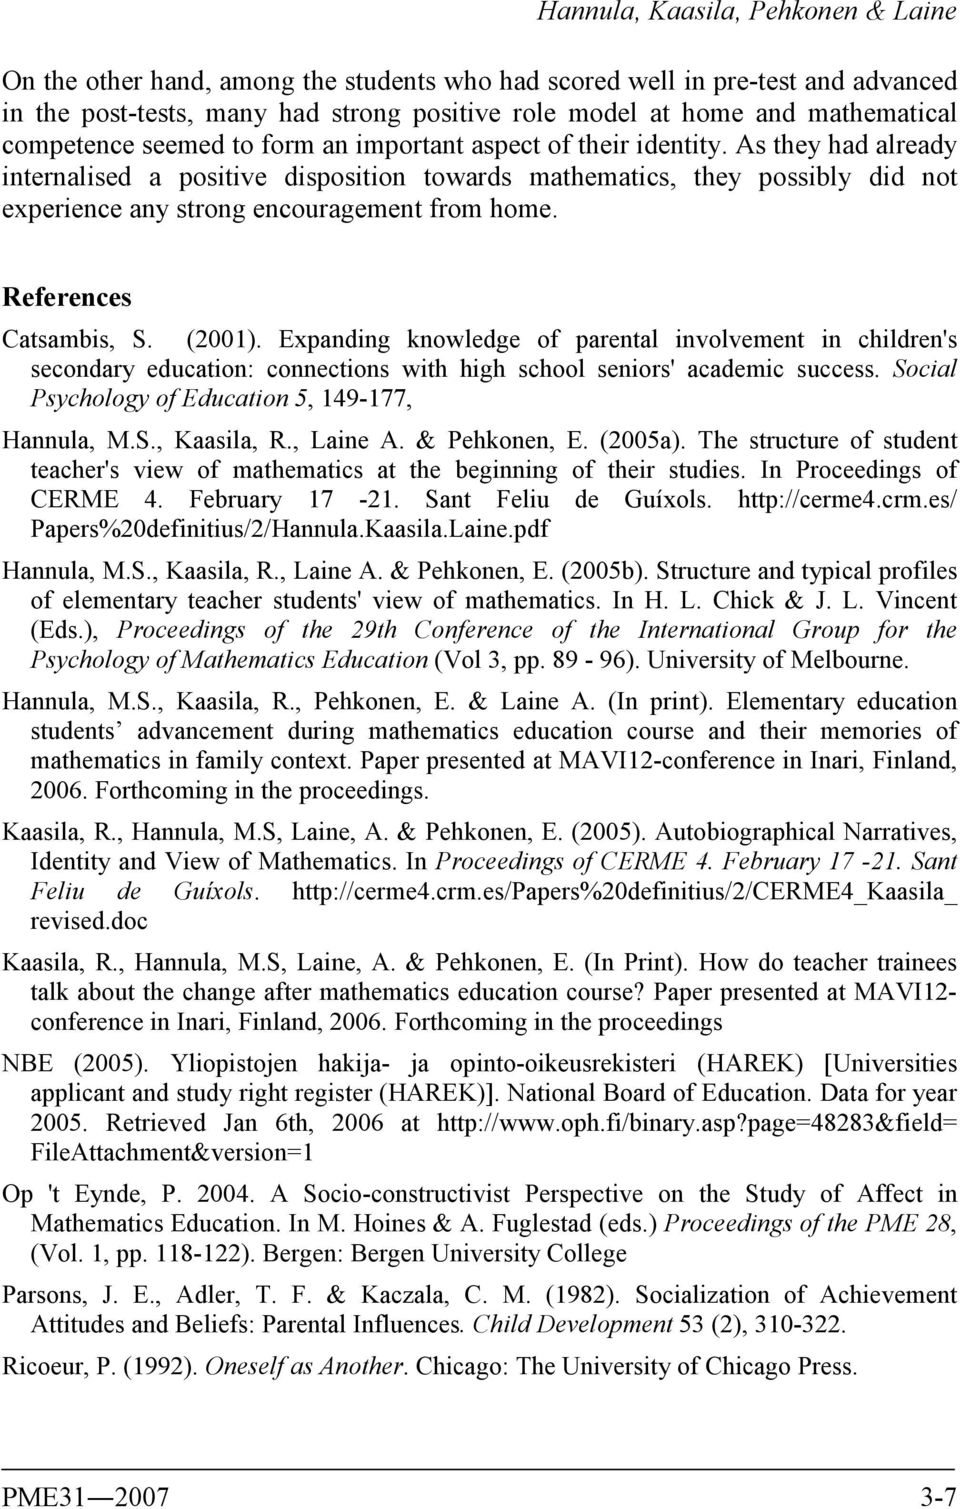 References Catsambis, S. (2001). Expanding knowledge of parental involvement in children's secondary education: connections with high school seniors' academic success.